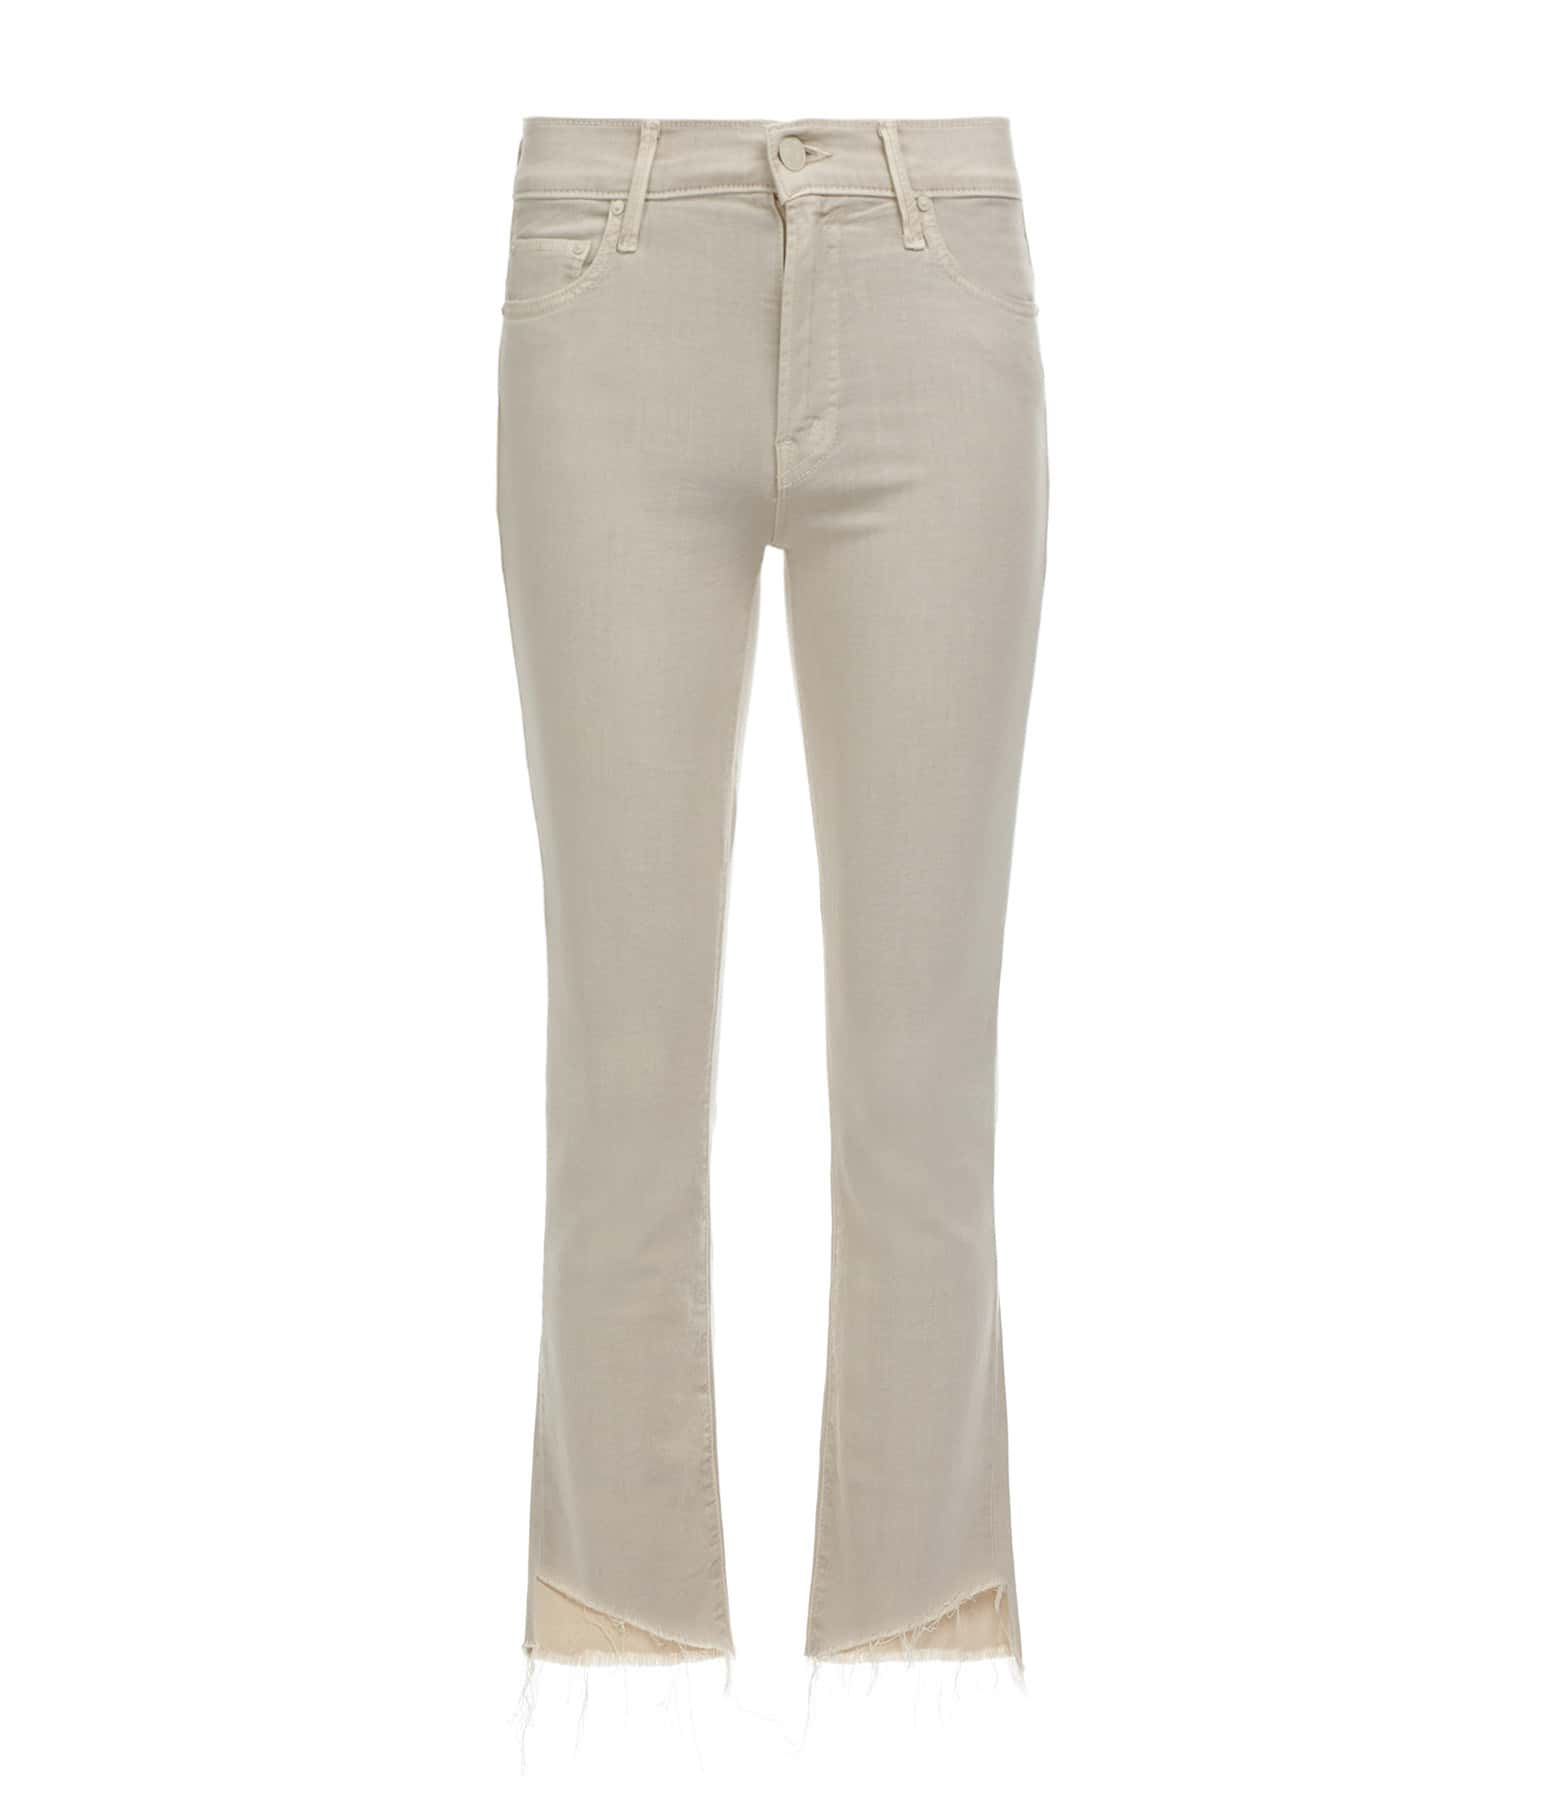 MOTHER - Jean The Insider Crop Step Fray Toasted Ivory